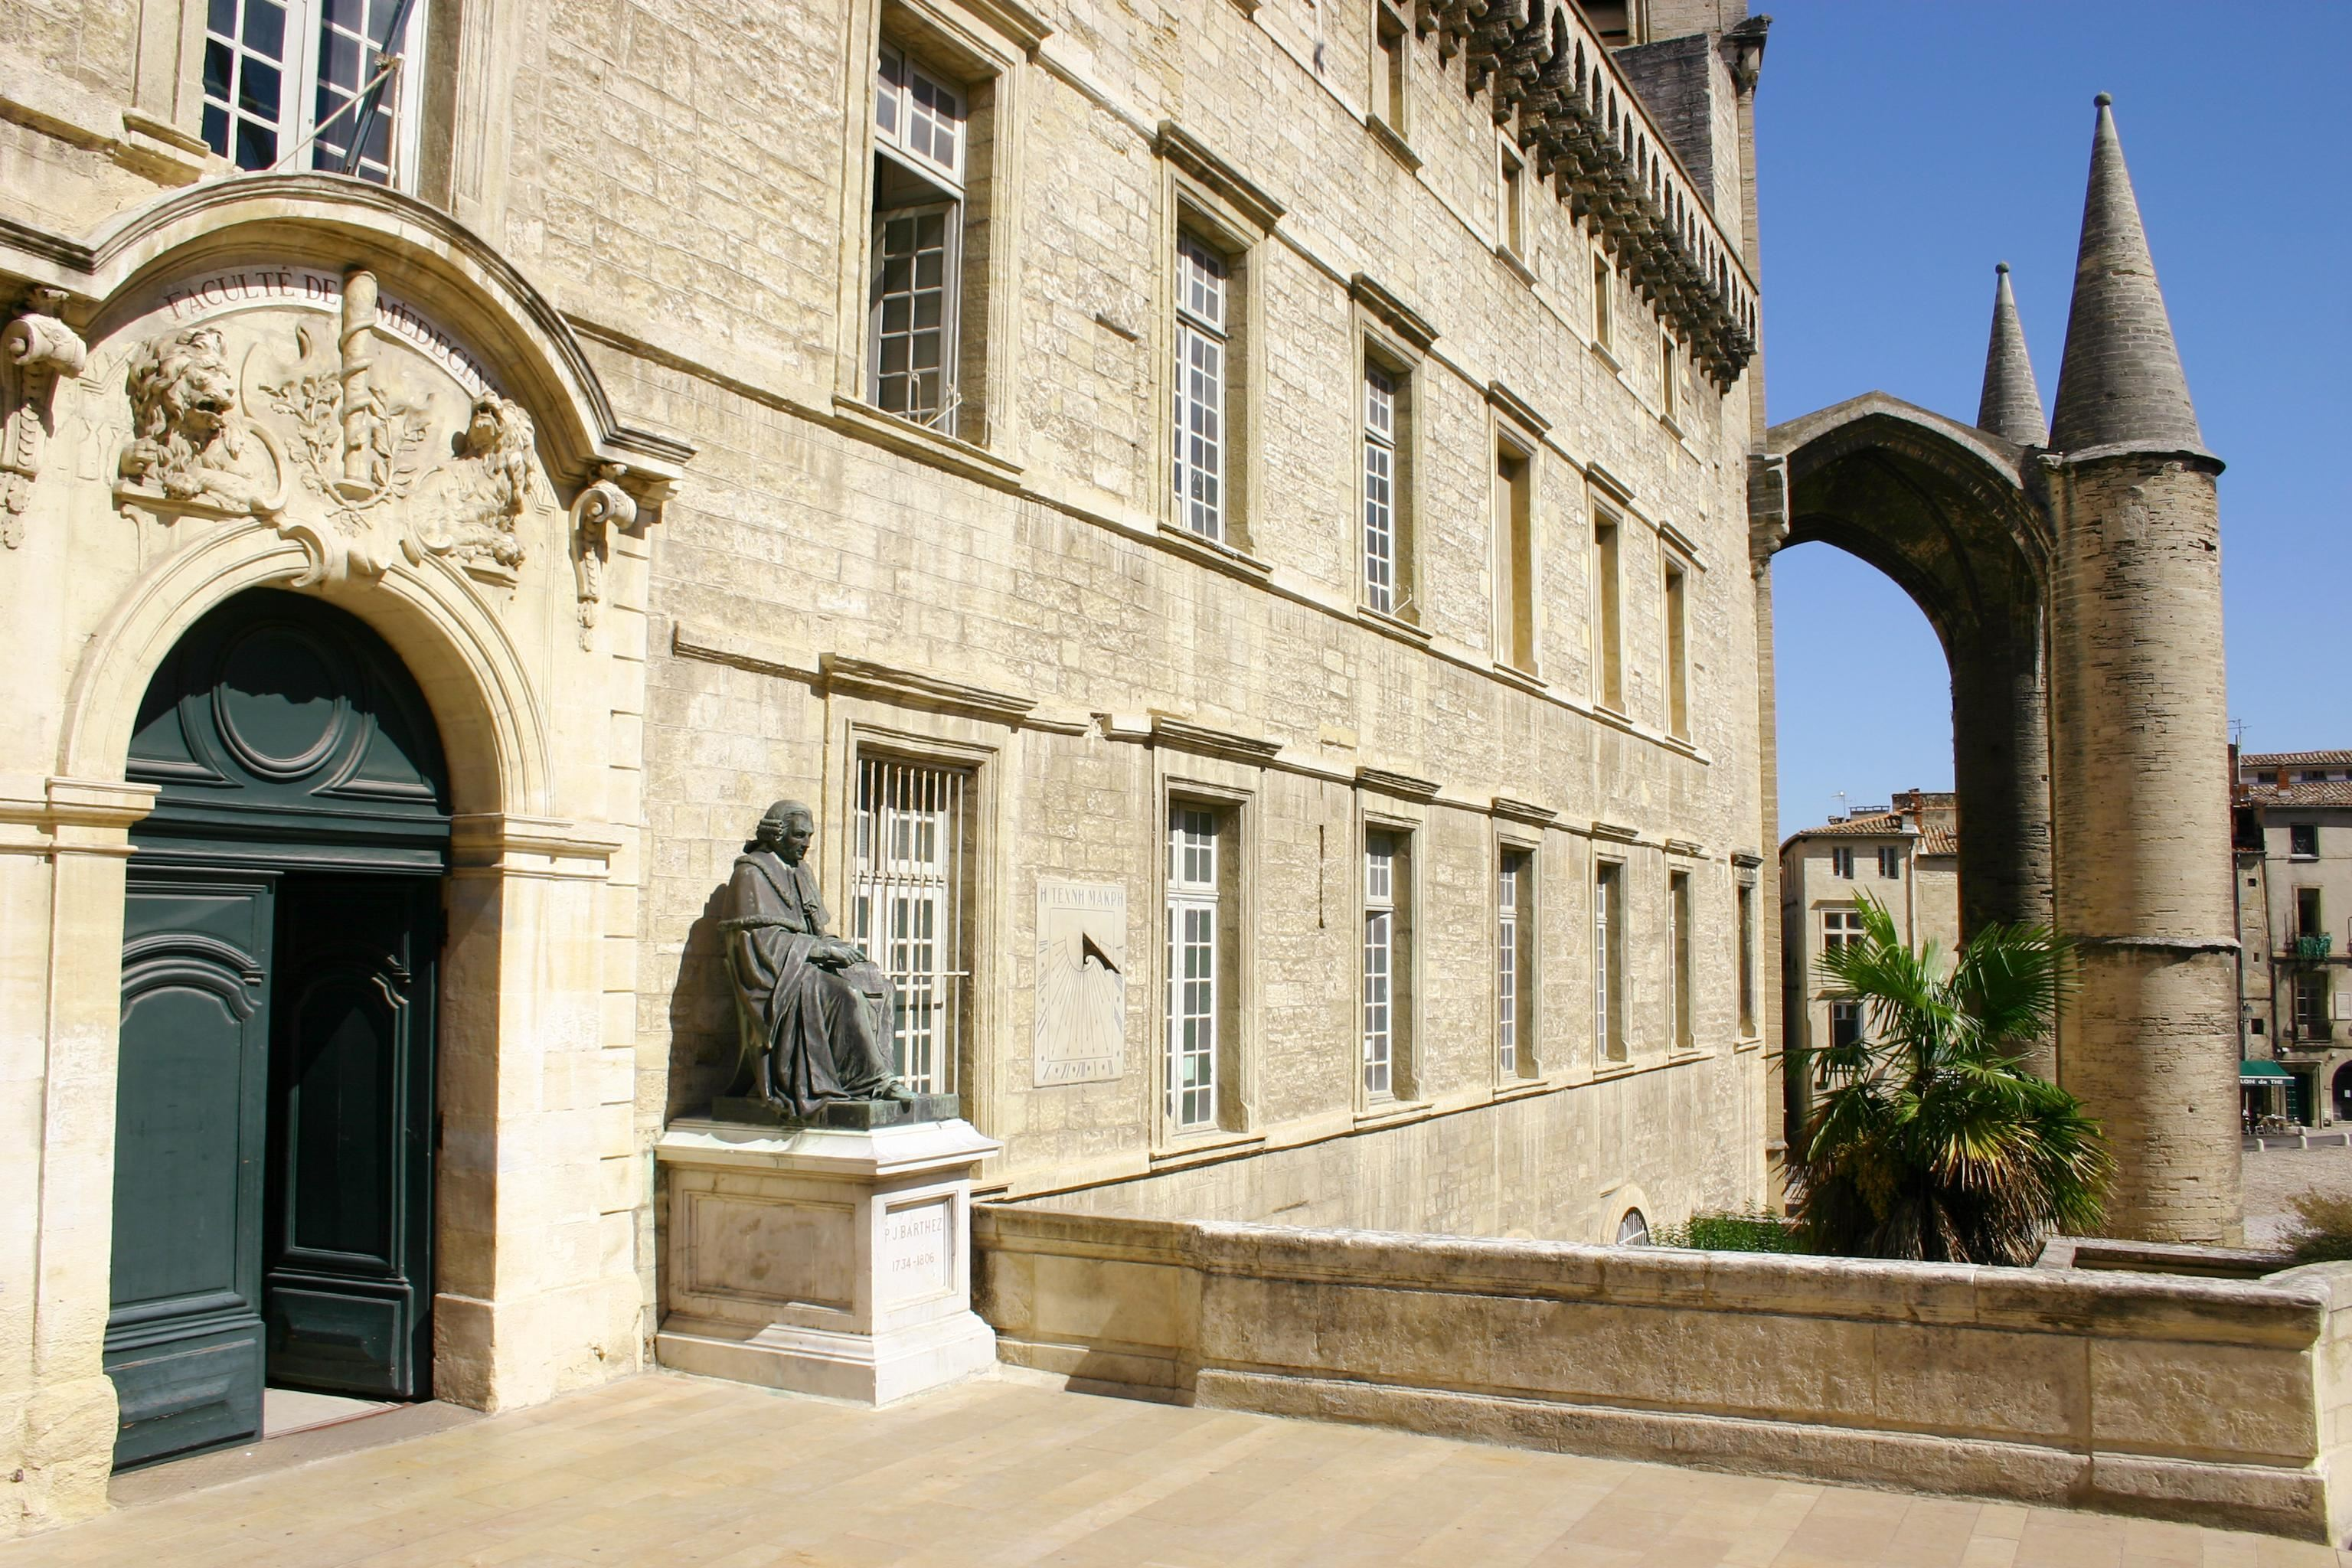 Visit Montpellier - Guided city tour in English: Faculty of Medicine